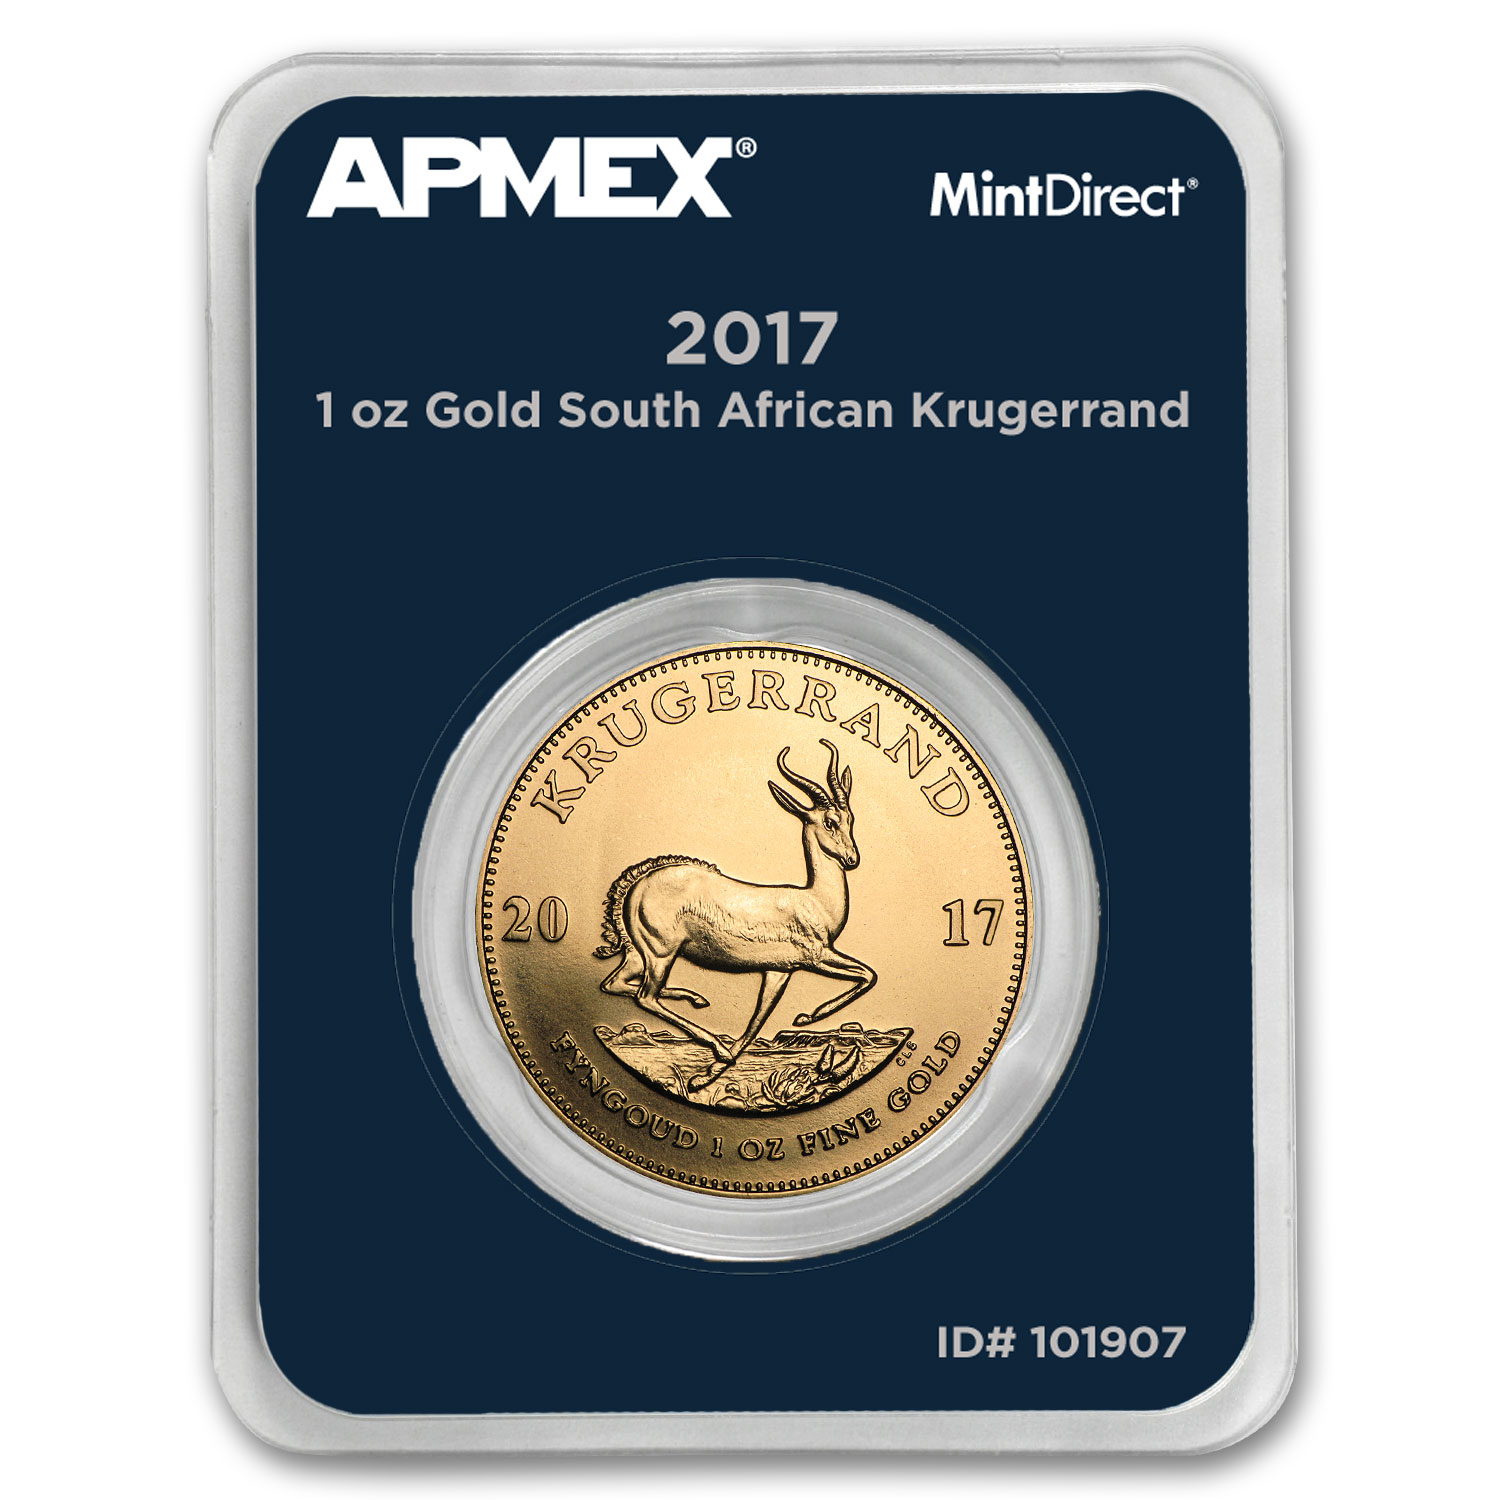 2017 South Africa 1 oz Gold Krugerrand (MintDirect® Single)